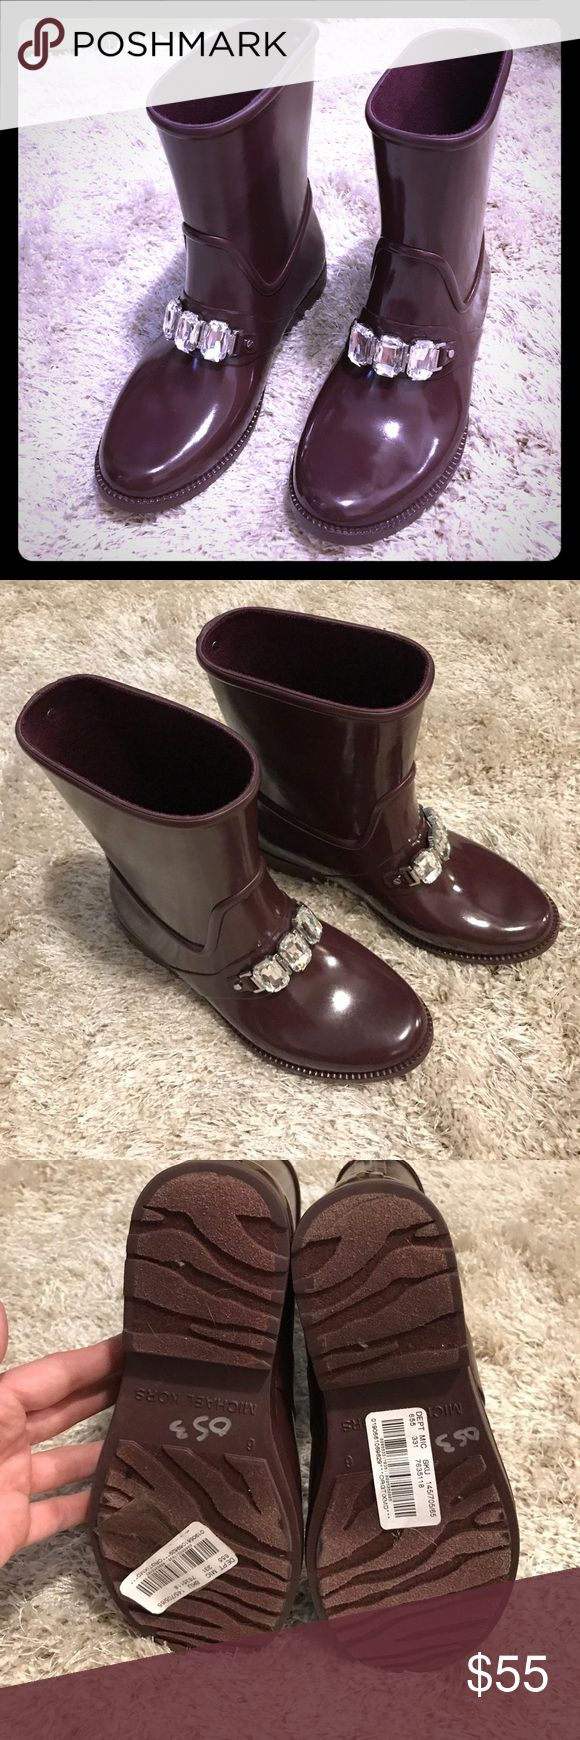 Michael Kors Leslie Embellished Rain Boots ☔️ Brand new! Never worn! Leslie rain boots!  Perfect for a rainy day! AUTHENTIC Michael Kors! Reasonable offers accepted! MICHAEL Michael Kors Shoes Winter & Rain Boots